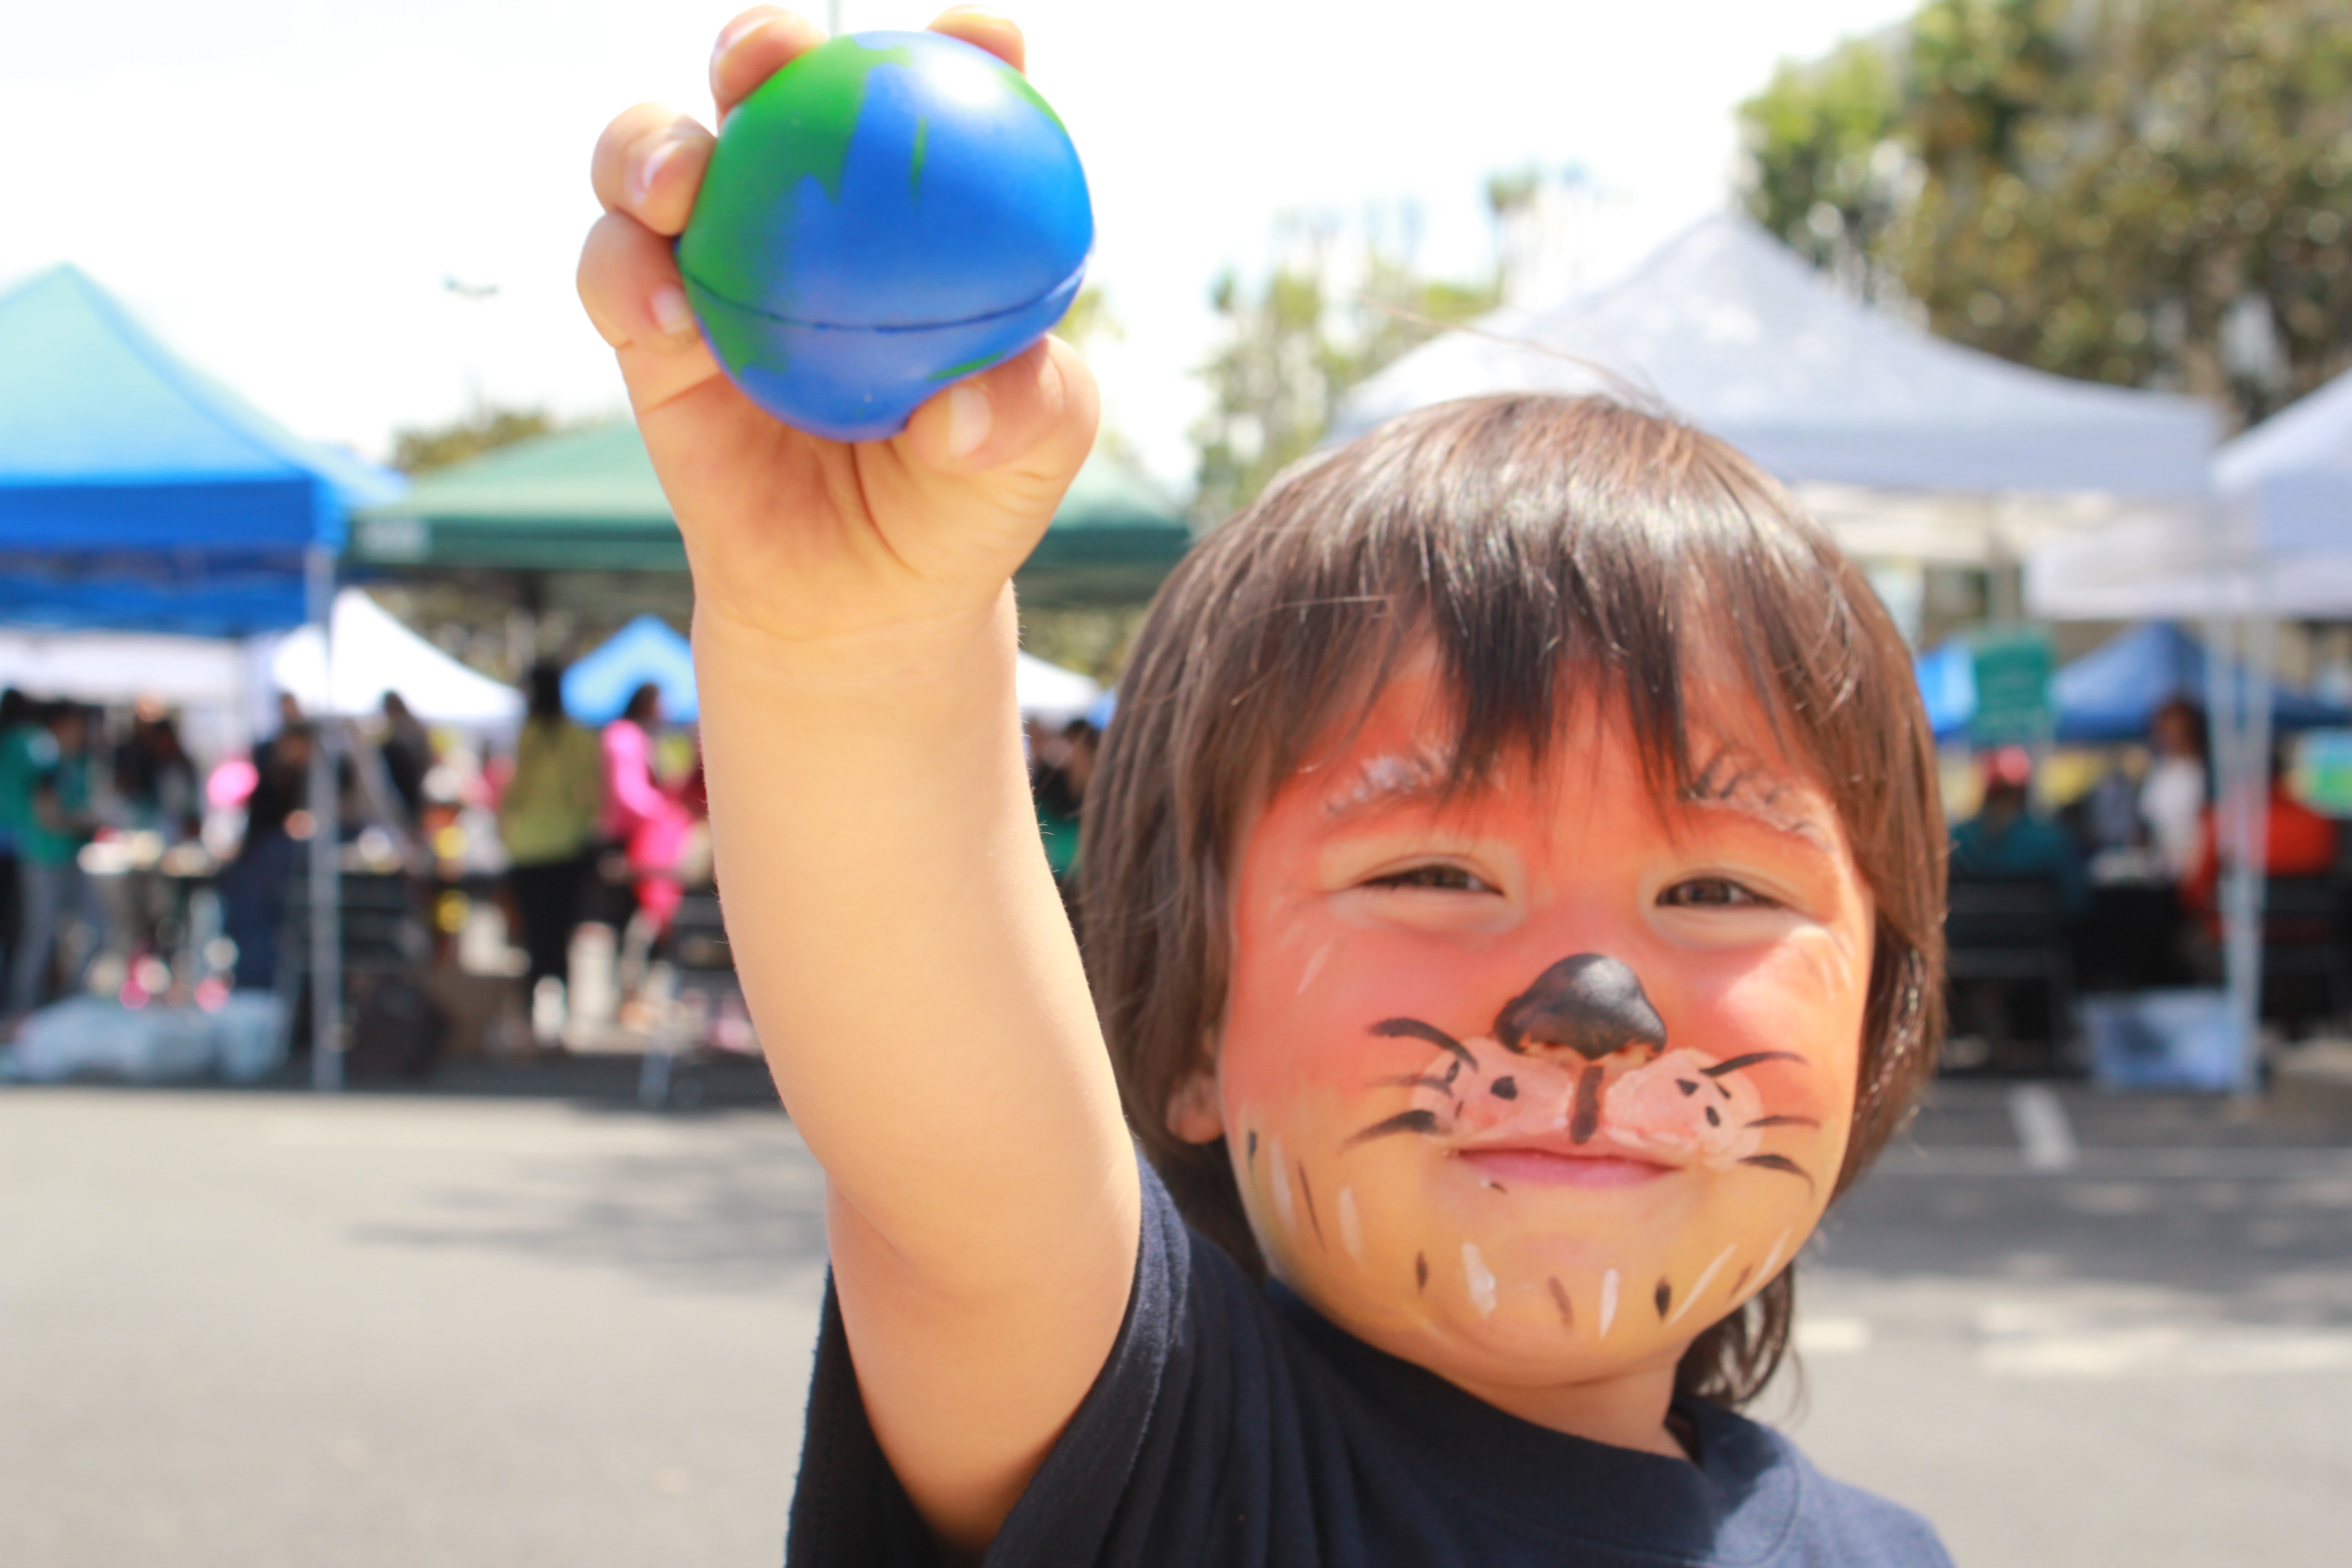 Mateo is looking forward to Let's Go Green Together 2017 on April 22, 2017, at Washington Hospital Healthcare System in Fremont, California. This fun and educational event reflects the Hospital's commitment to environmental stewardship in health care, and is part of Earth Day 2017 celebrations around the world. (Photo: Business Wire)